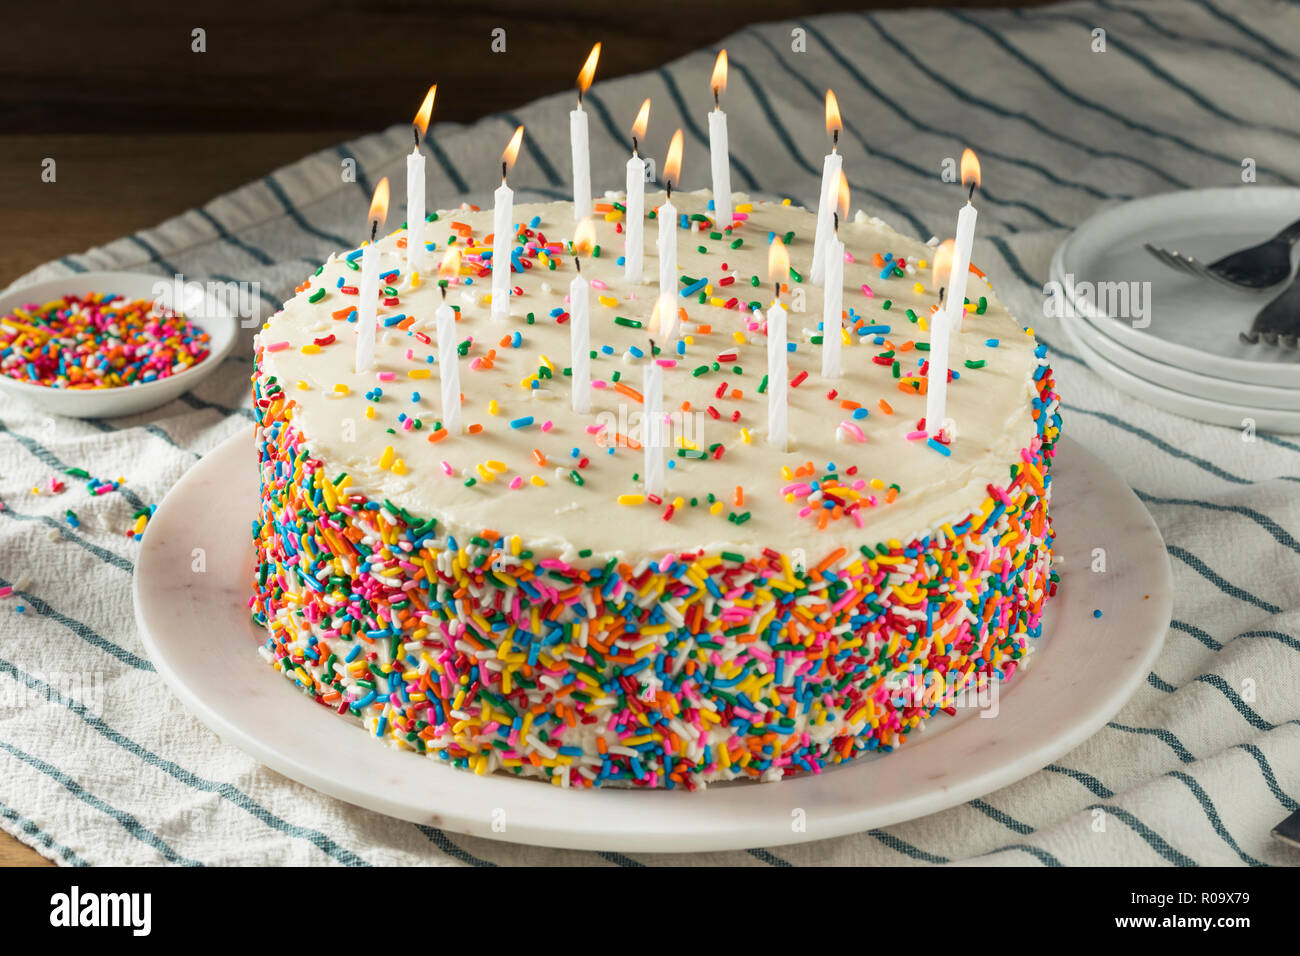 Homemade Sweet Birthday Cake With Candles Ready To Serve